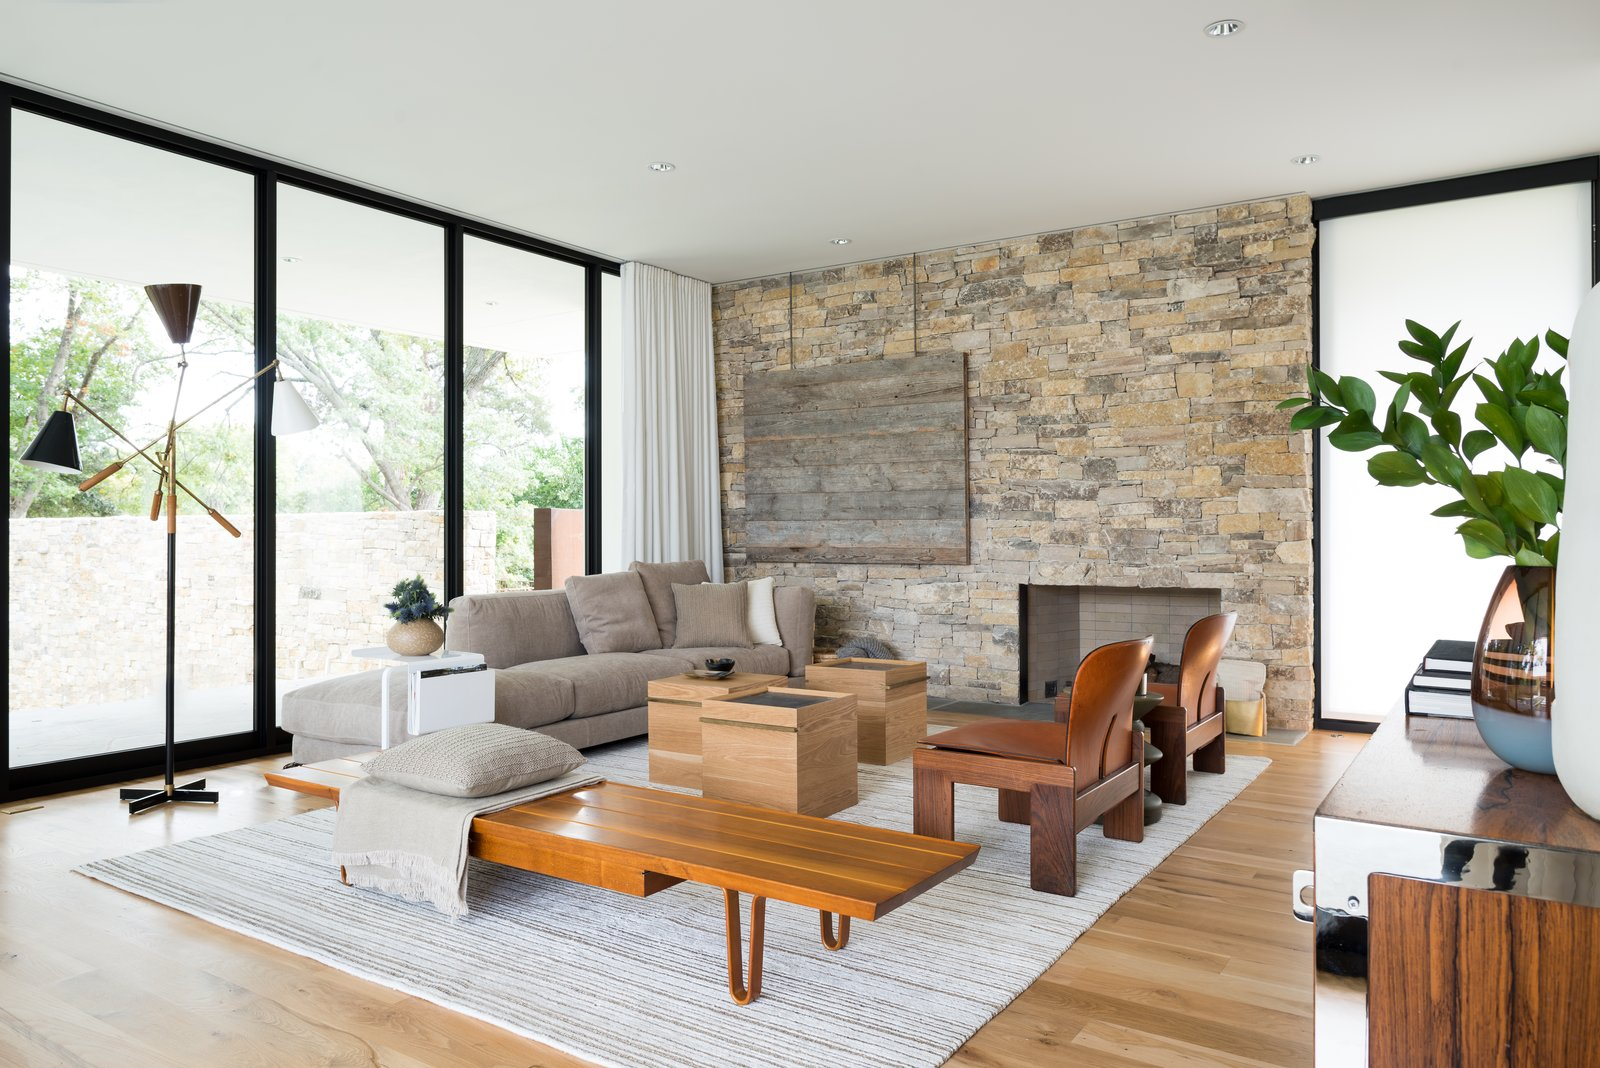 The family room boasts a Monza Triennale Floor Lamp by Gino Sarfatti and a Long John Bench by Edward Wormley, both from the 1950s, as well as a pair of '60s rosewood and leather '925' lounge chairs by Arfa and Tobia Scarpa. Pieces by Ludwig Mies van der Rohe and Alvar Aalto also fill the space.  Preston Hollow by Laura C. Mallonee